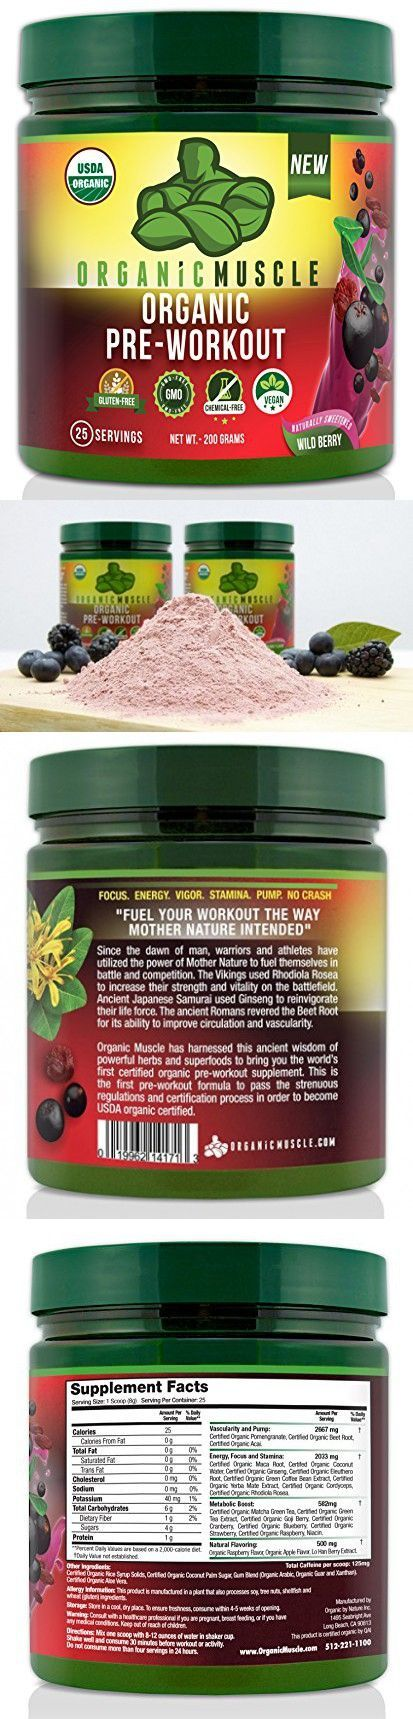 USDA Certified Organic Pre Workout Supplement - Natural Pre Workout & Organic Energy Drink- Non-GMO, Vegan, Paleo, Gluten Free --Wild Berry - 25 Serv.